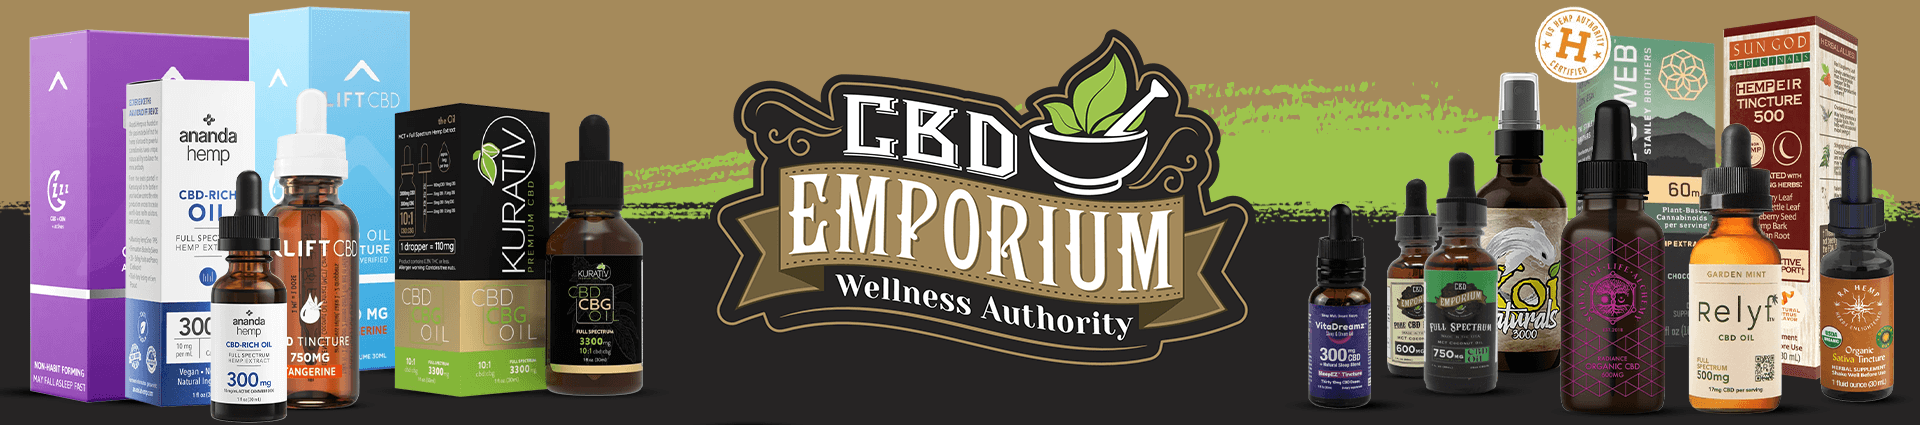 CBD Tinctures products at CBD Emporium